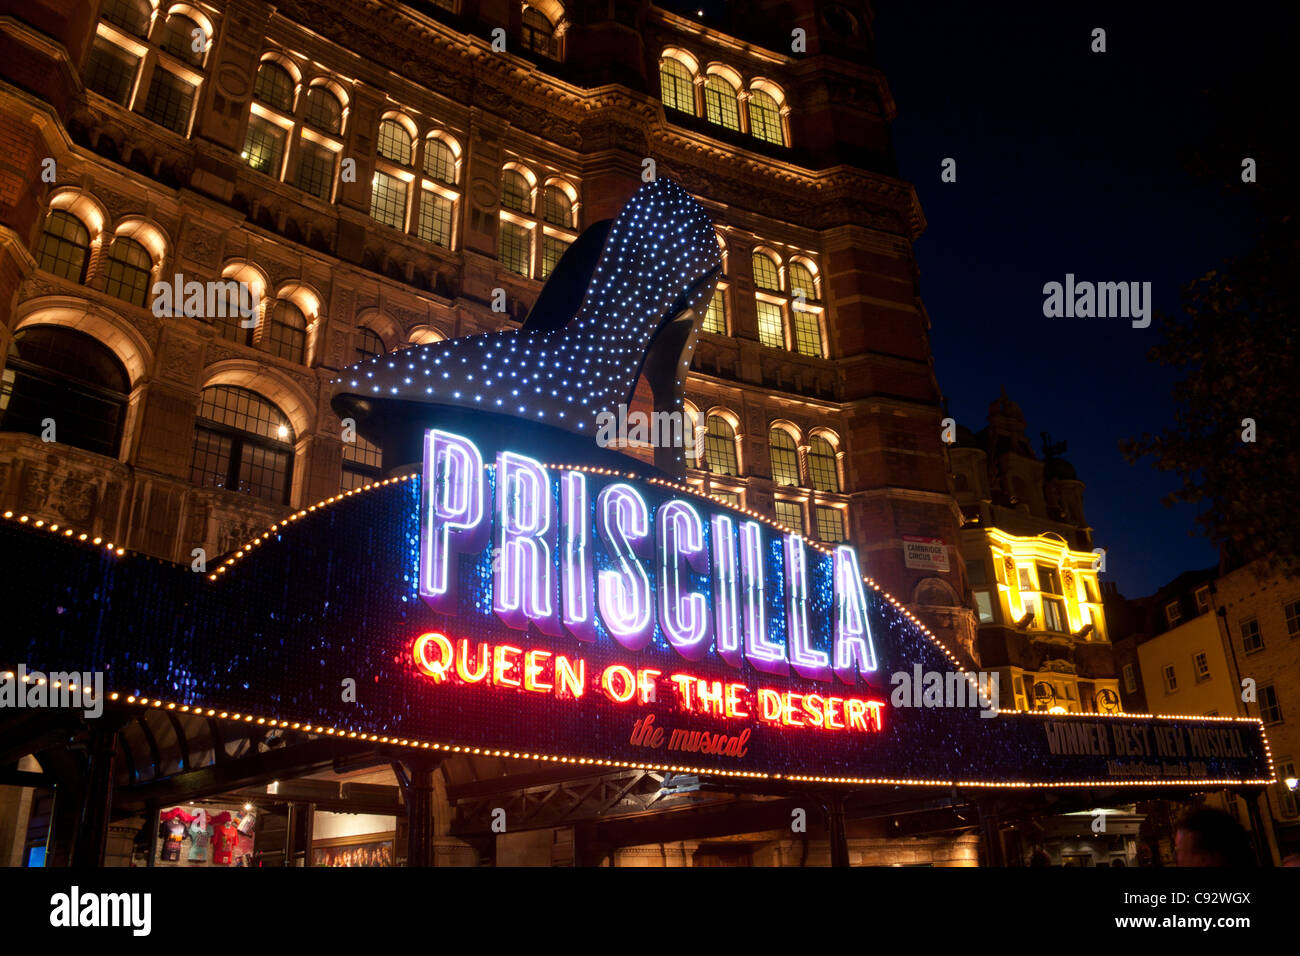 Palace Theatre at night with high heeled shoe and neon sign advertising Priscilla Queen of the Desert musical London - Stock Image